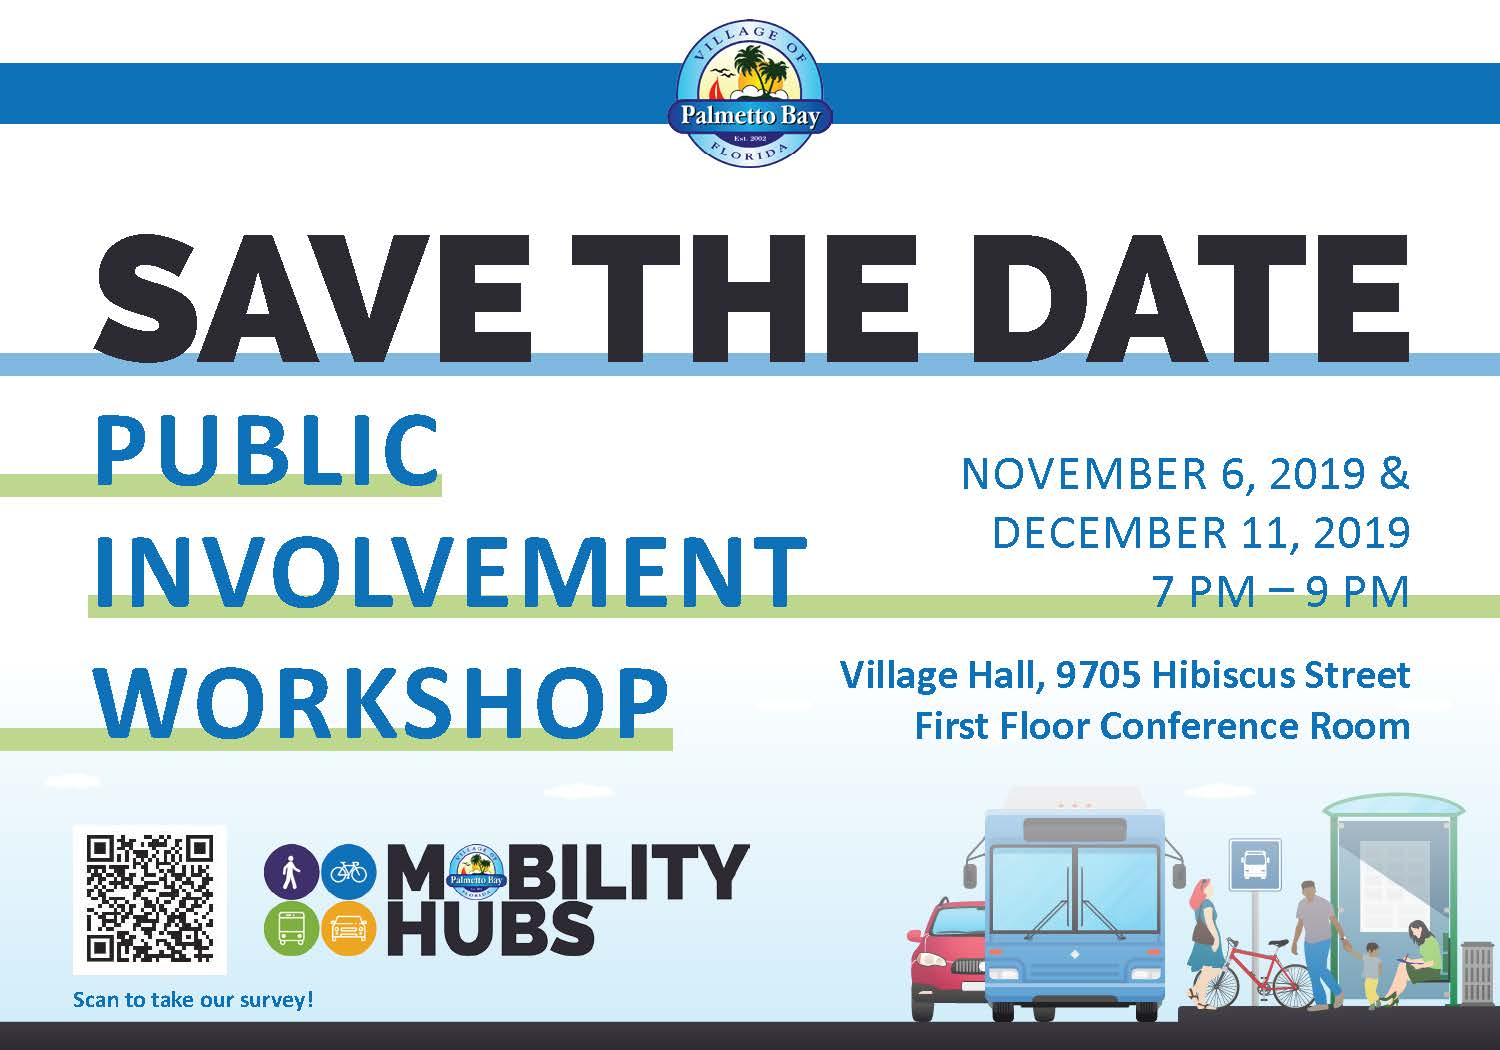 Mobility Hubs: Public Involvement Workshop Save The Dates: November 6th and December 11th from 7 - 9